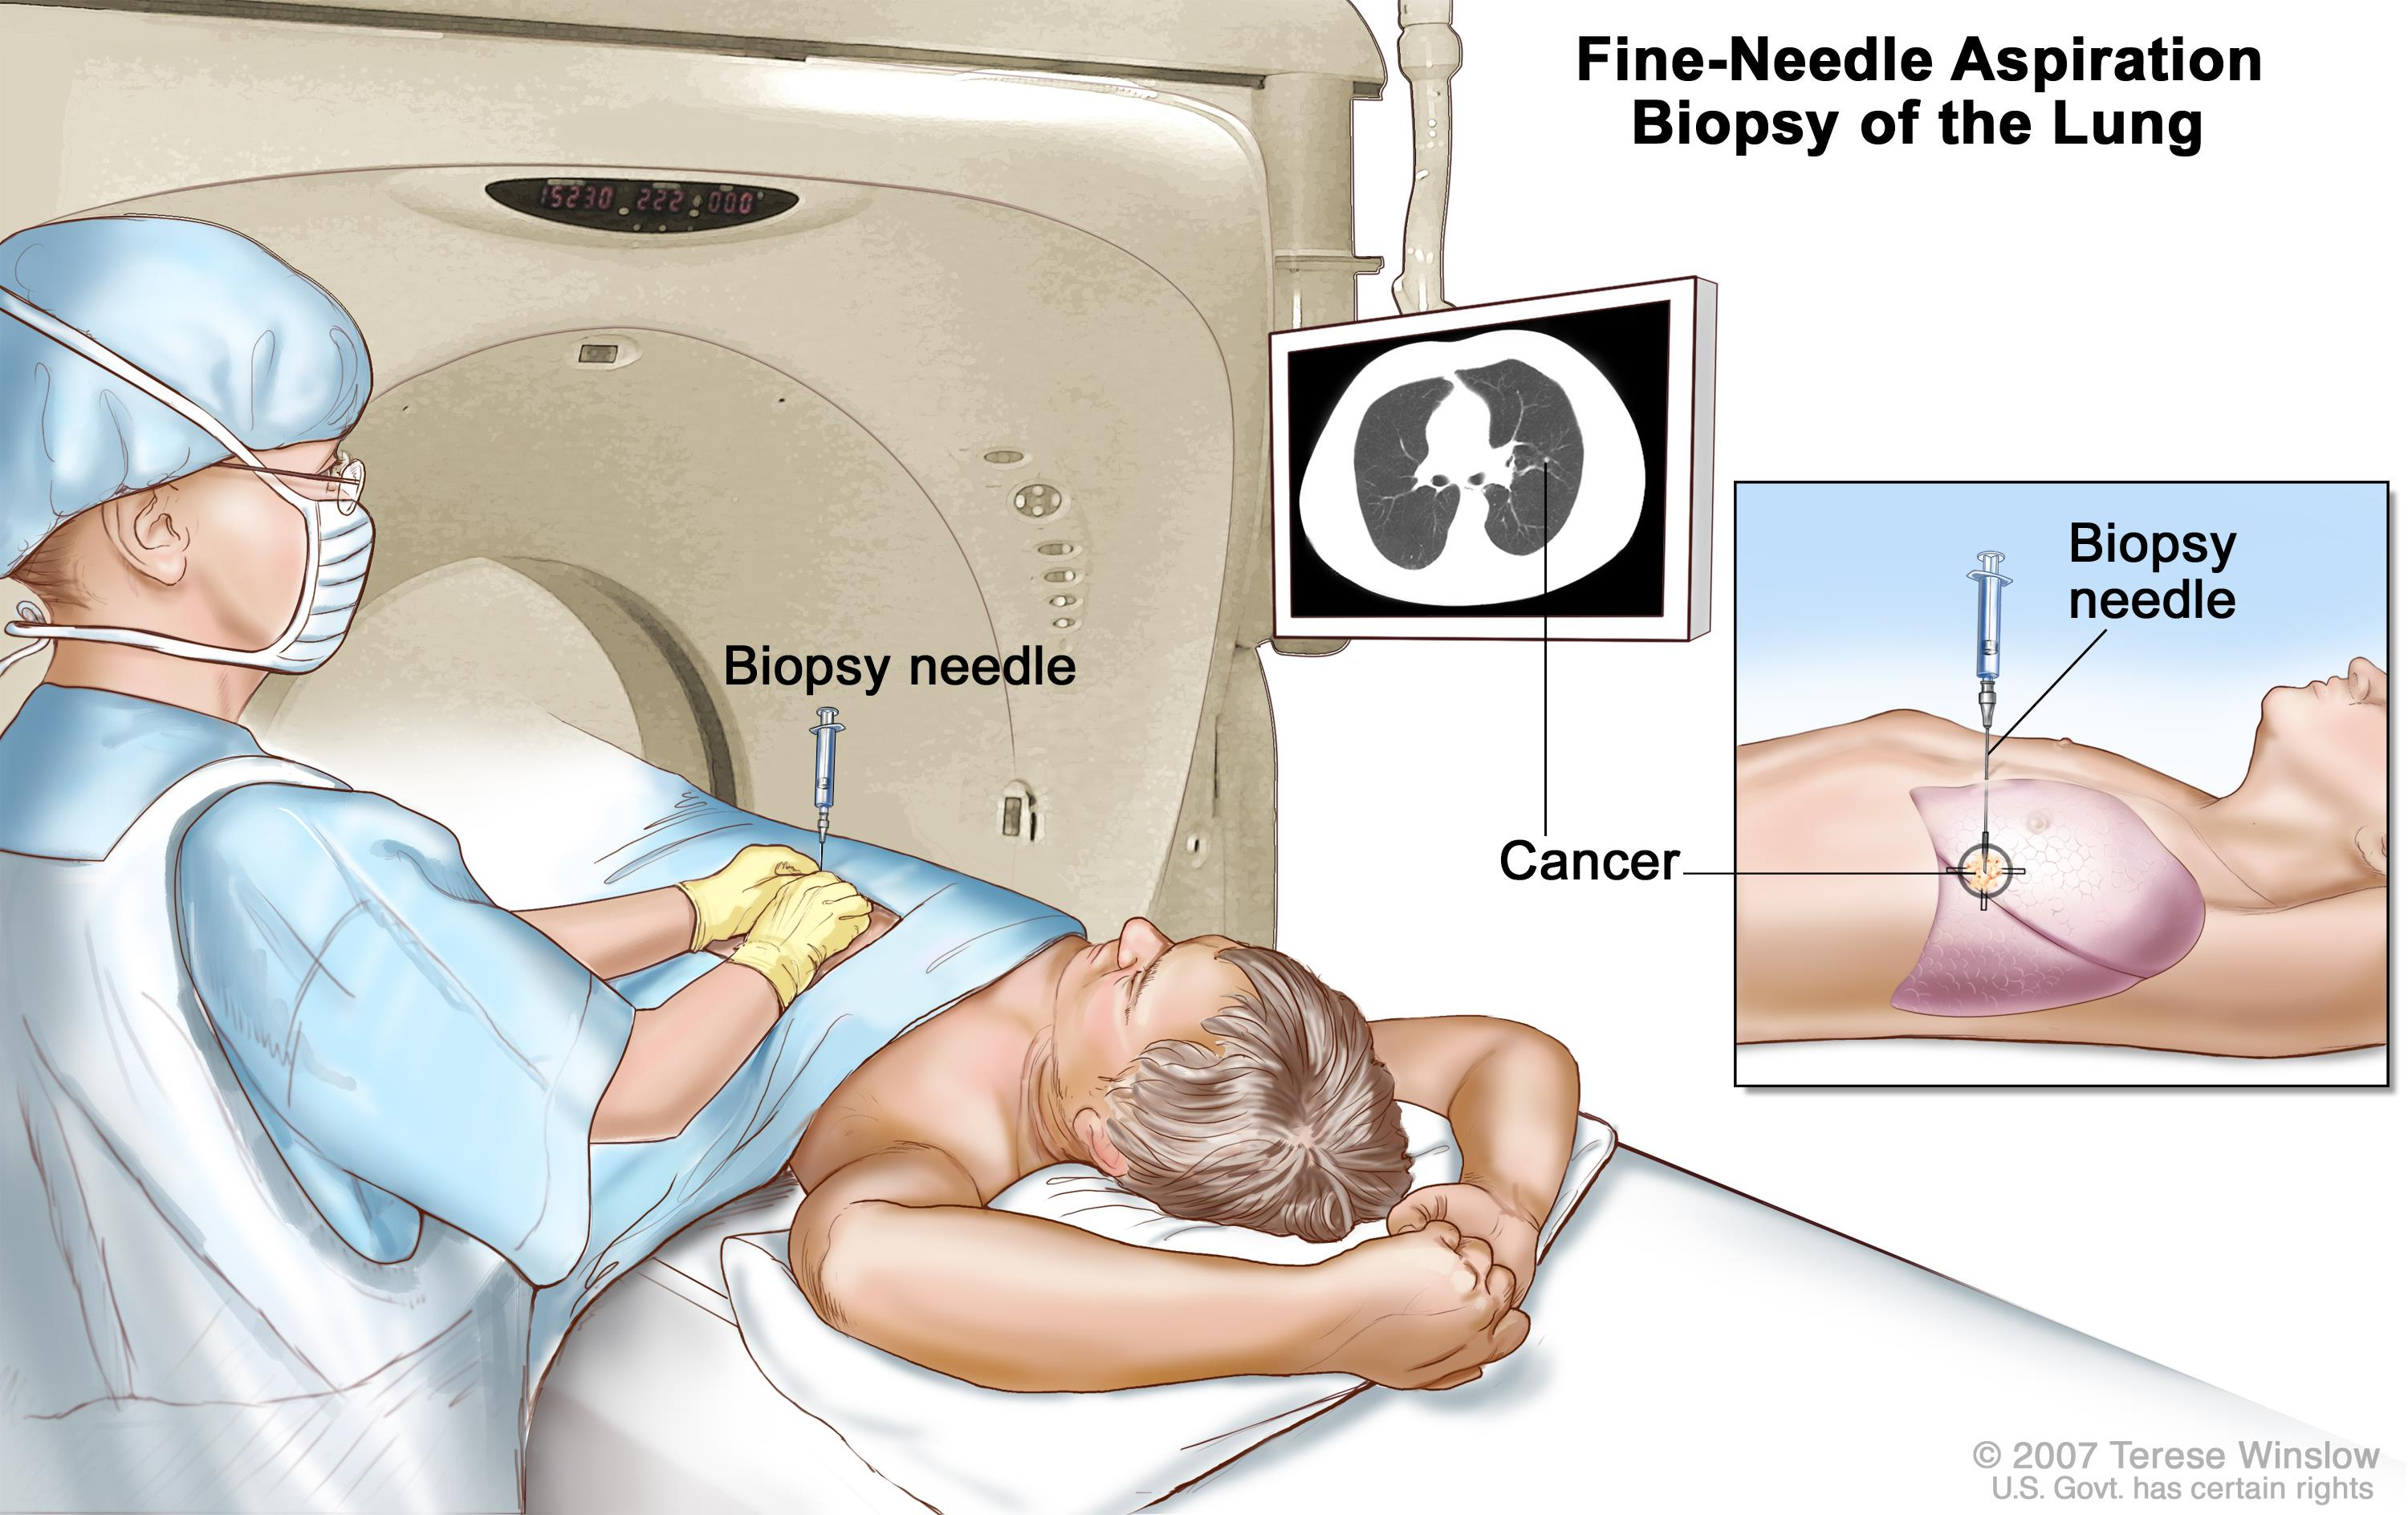 Fine-needle aspiration biopsy of the lung; drawing shows a patient lying on a table that slides through the computed tomography (CT) machine with an x-ray picture of a cross-section of the lung on a monitor above the patient. Drawing also shows a doctor using the x-ray picture to help place the biopsy needle through the chest wall and into the area of abnormal lung tissue. Inset shows a side view of the chest cavity and lungs with the biopsy needle inserted into the area of abnormal tissue.